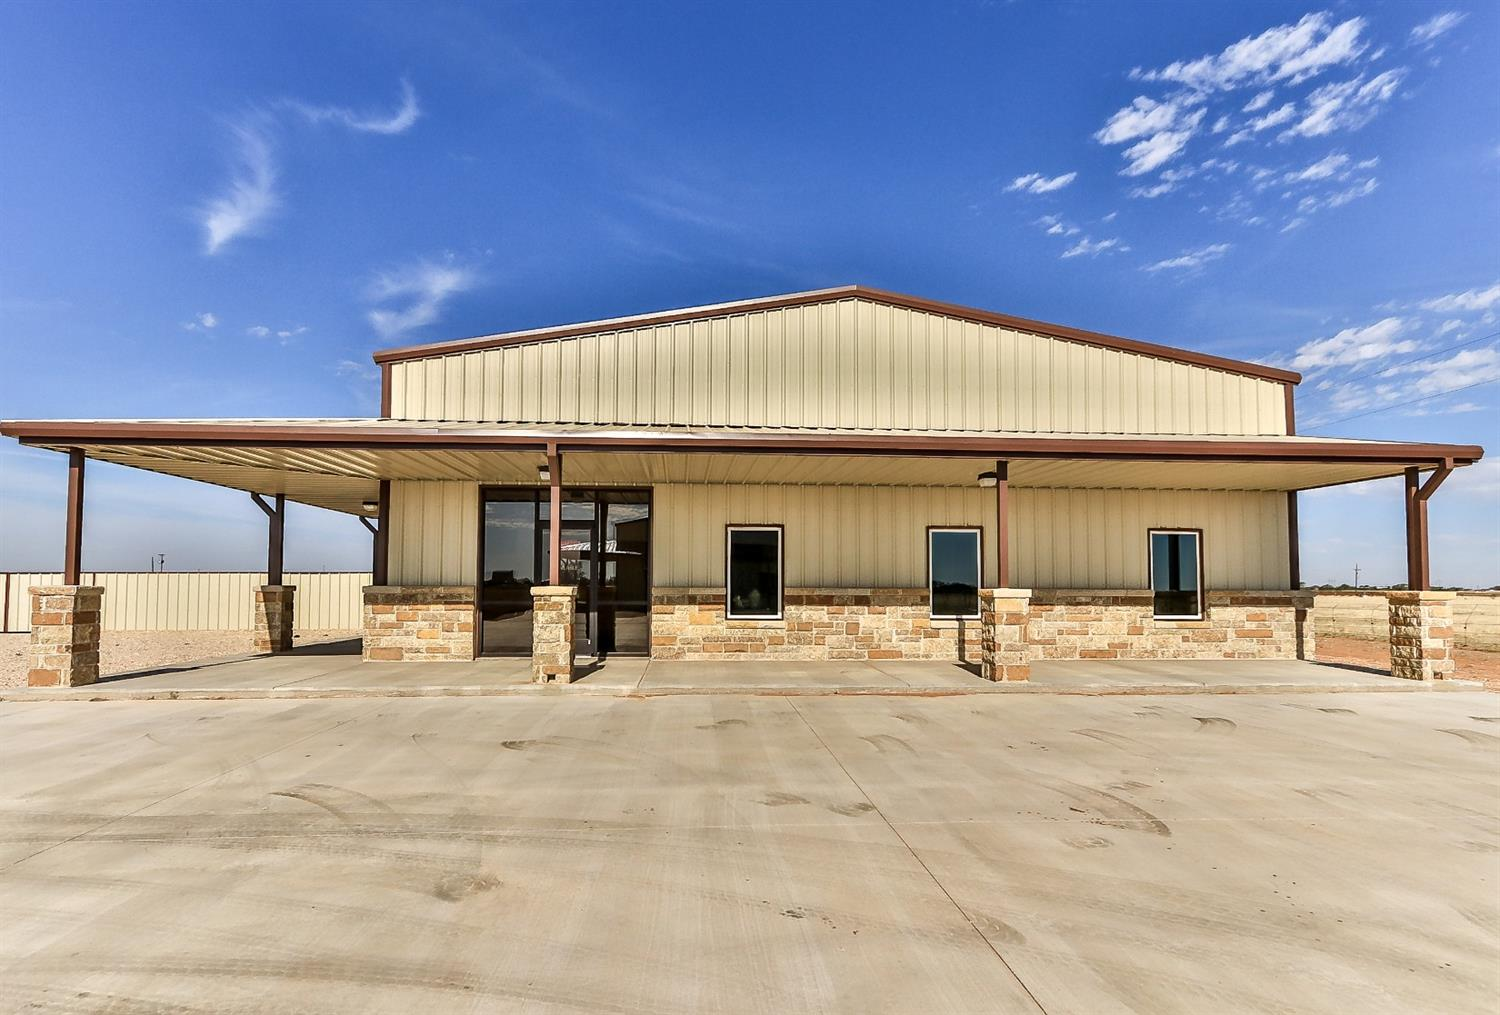 5,000 SF Office/ Warehouse with three private offices, two restrooms, well, septic, concrete drive and two 14' X 14' overhead doors.  The property is fully fenced with a 6' meal fence and roll gate.  Loop 88 will pass right in front of the property for easy access.    Tenant - Interstates Construction Services, Inc.   Call Listing Agent for Financial Information